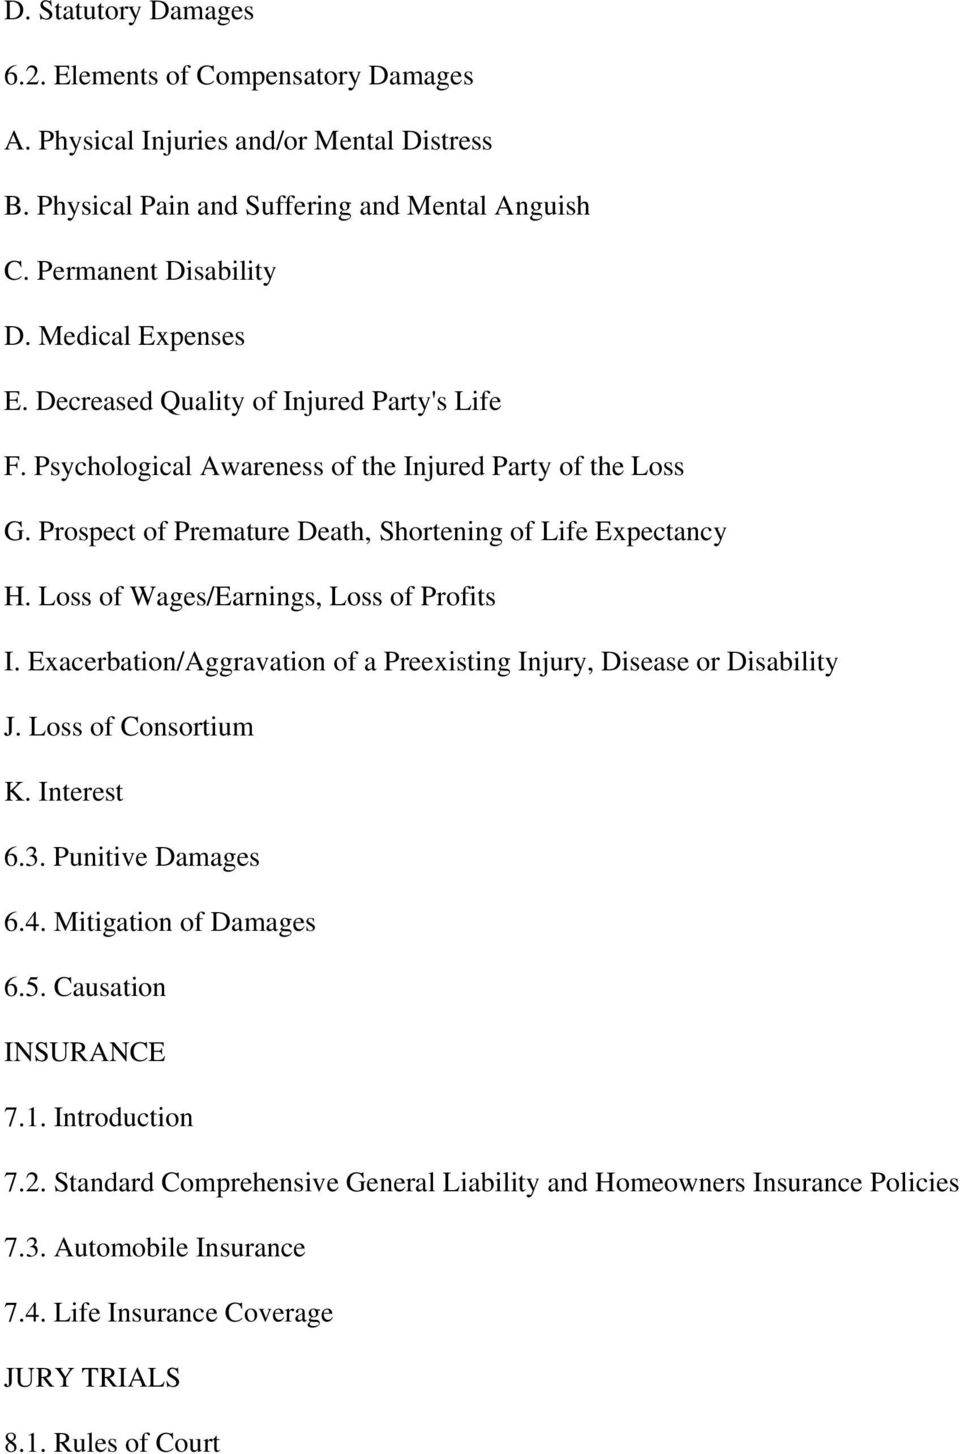 Loss of Wages/Earnings, Loss of Profits I. Exacerbation/Aggravation of a Preexisting Injury, Disease or Disability J. Loss of Consortium K. Interest 6.3. Punitive Damages 6.4.